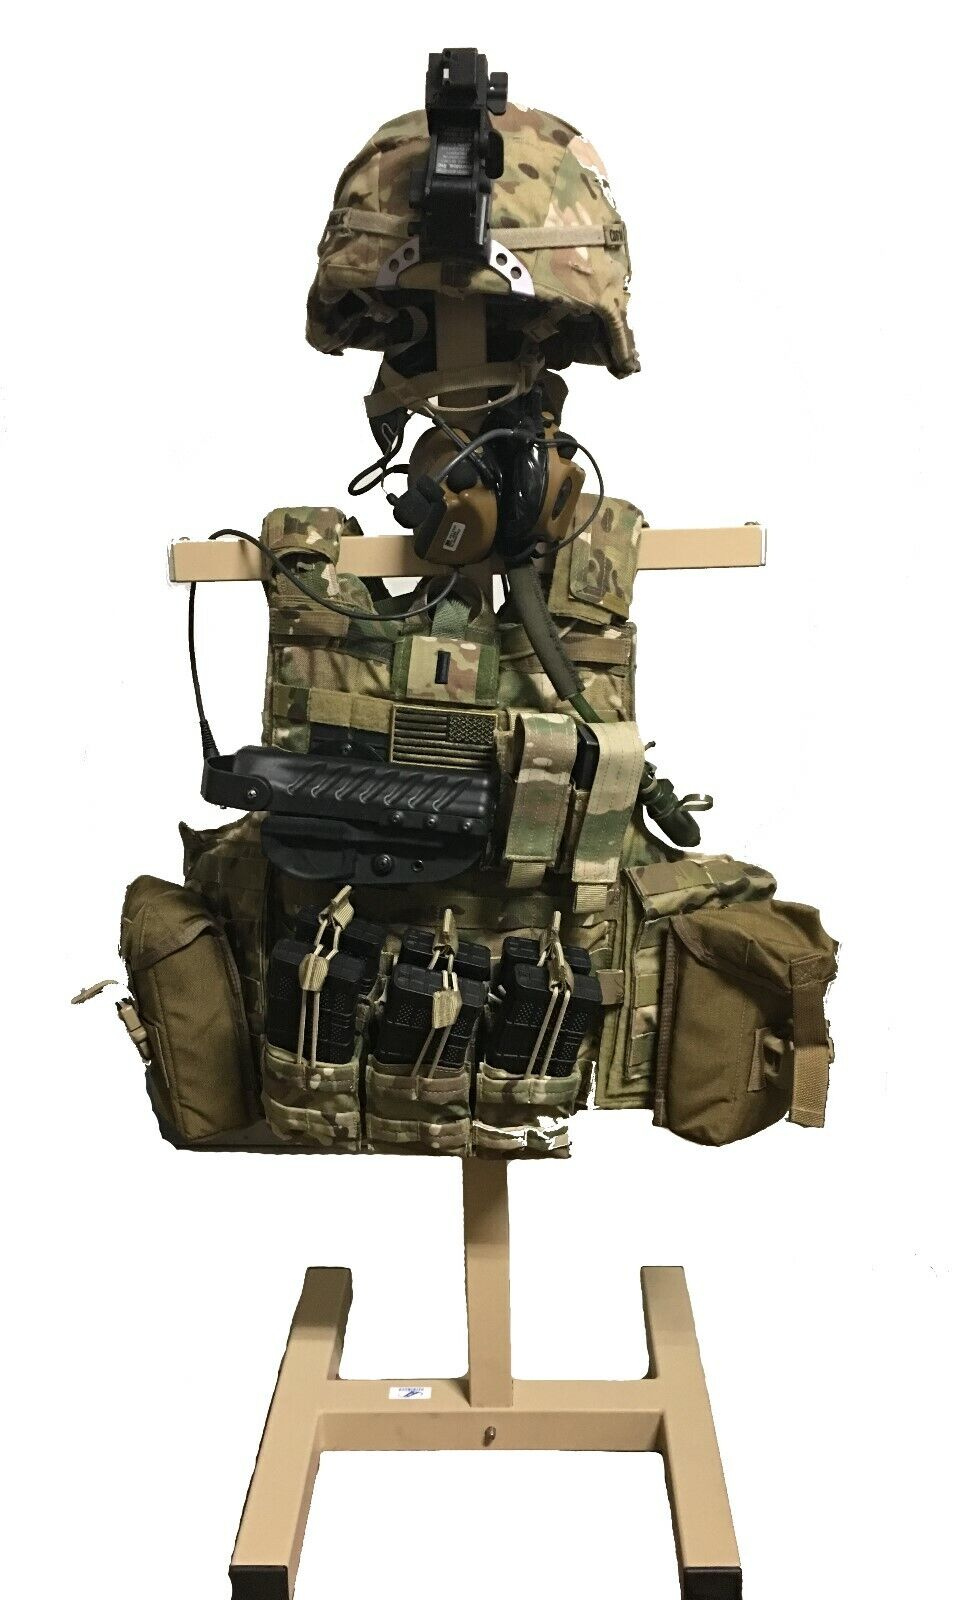 BattleReady Military and Law Enforcement Tactical  Heavy Duty Gear Stand USA MADE  looking for sales agent